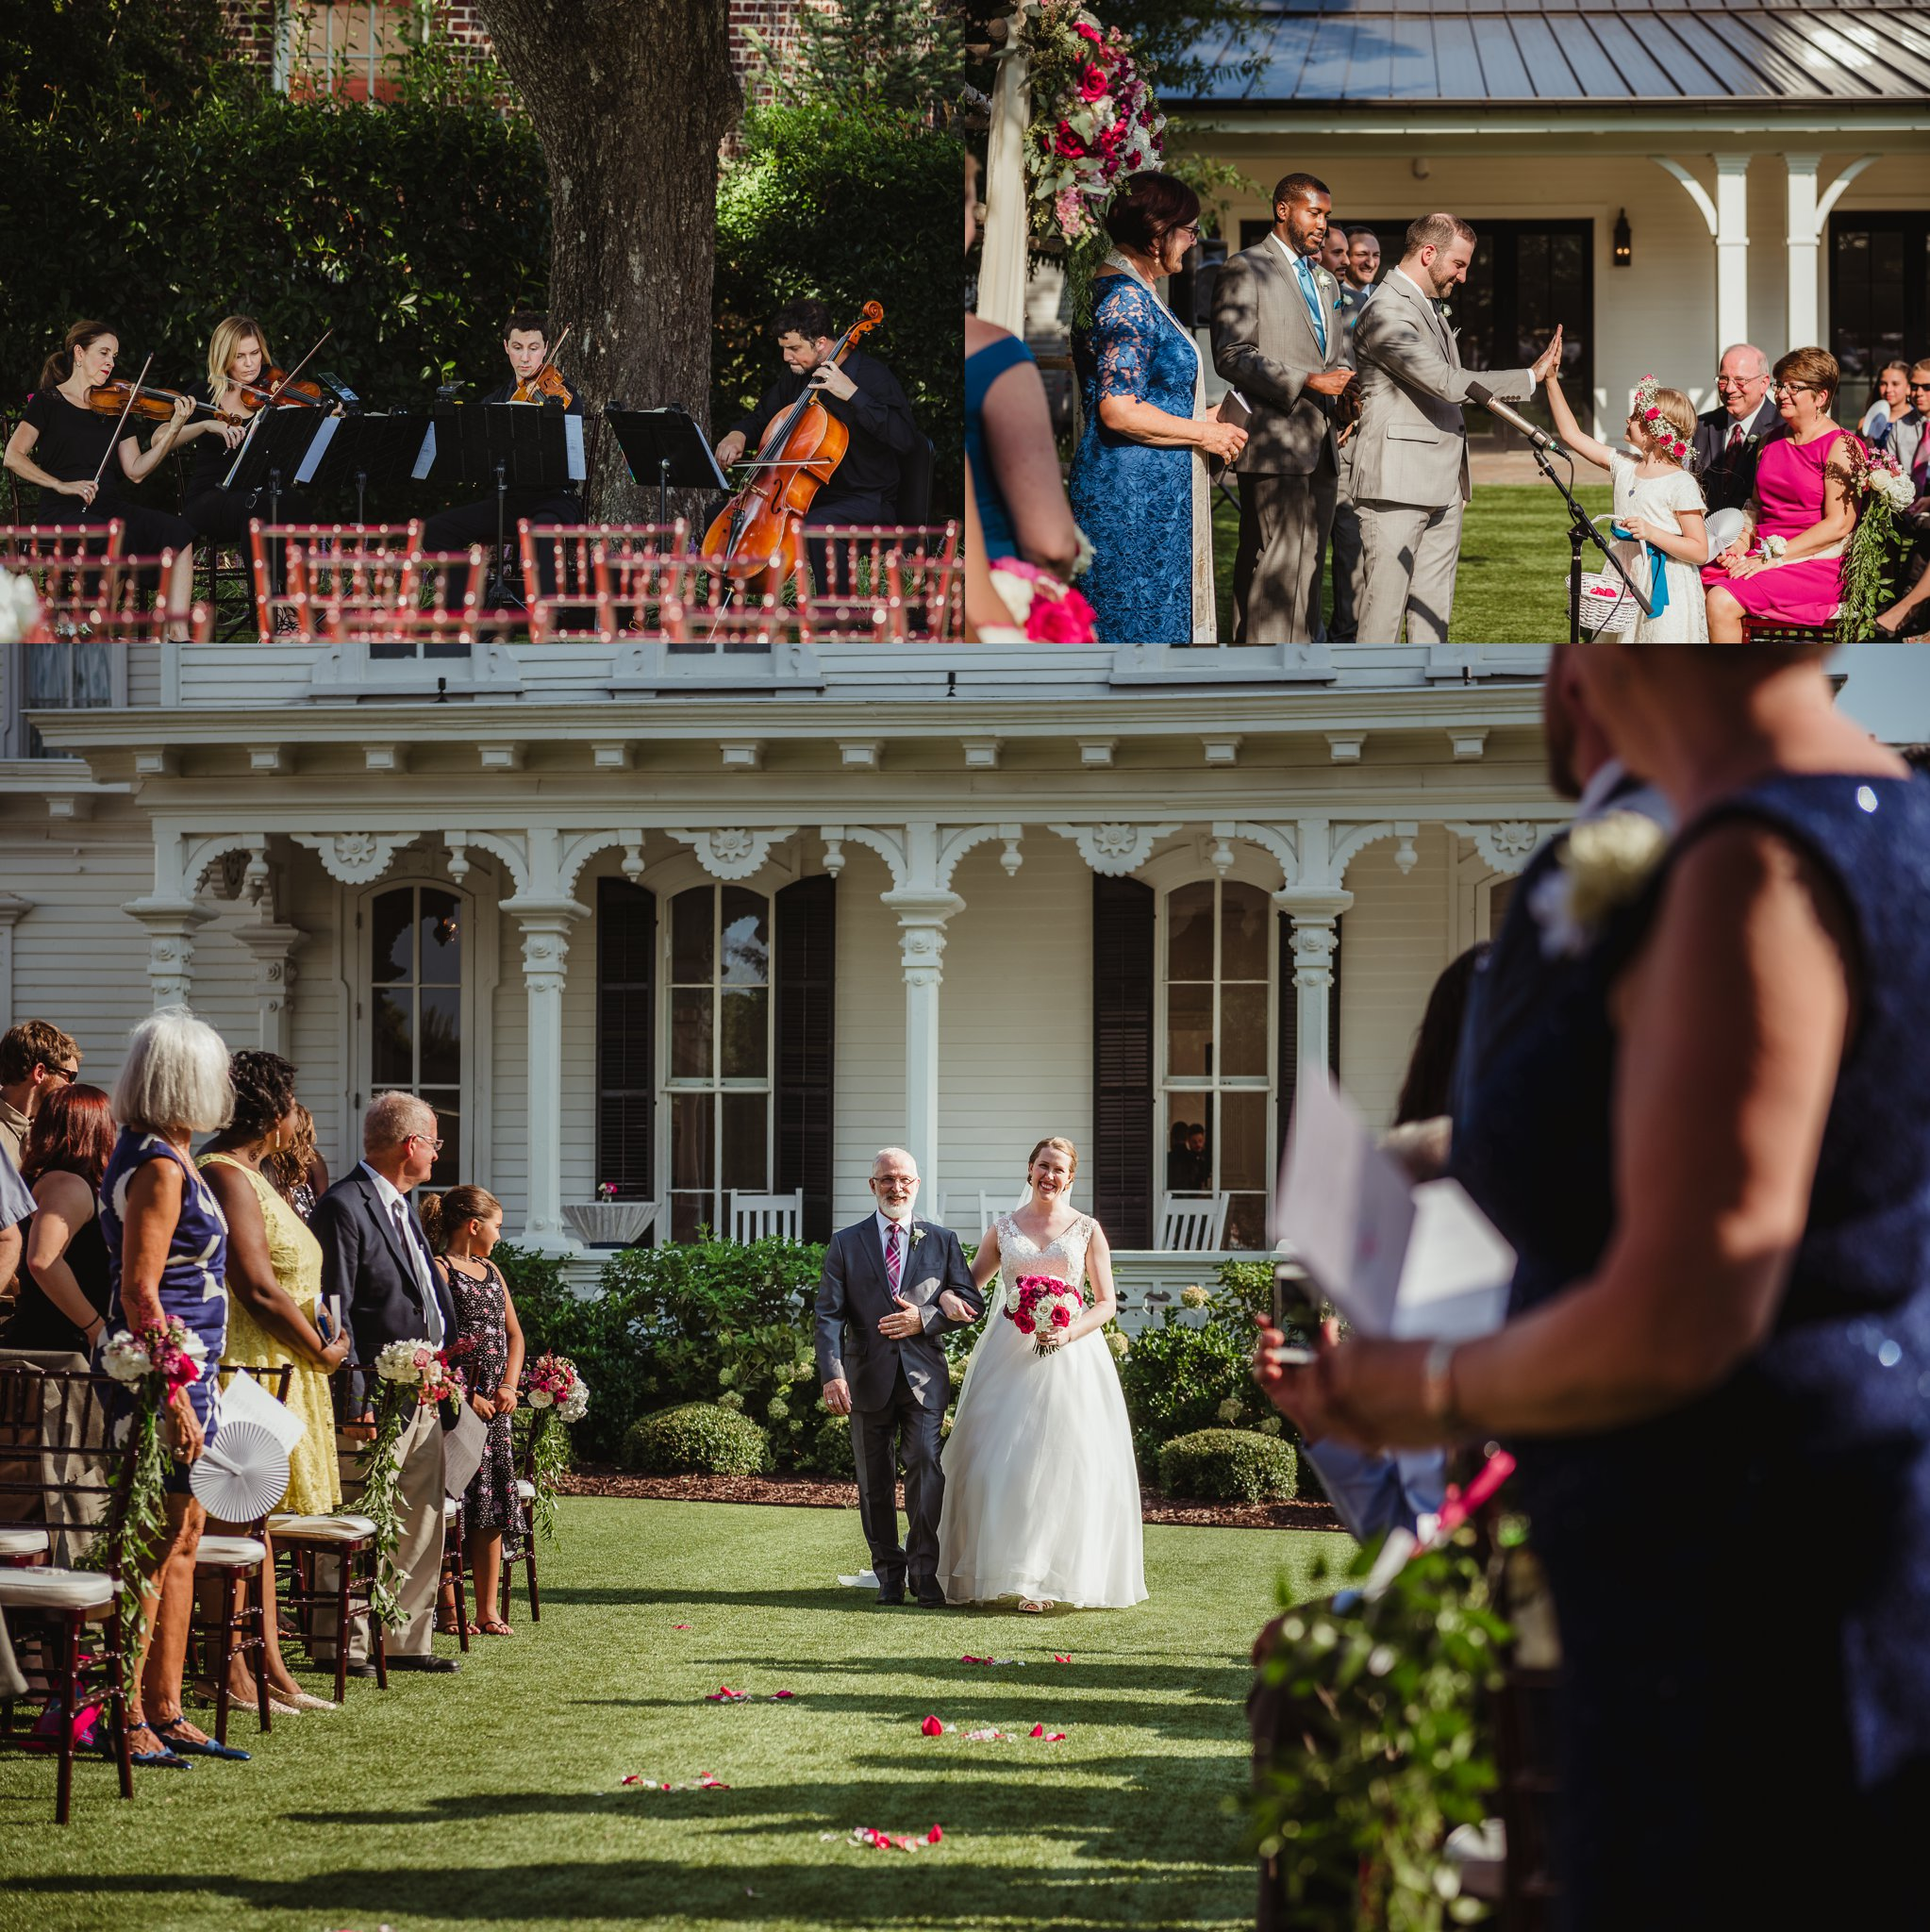 The bride and groom get ready for their wedding ceremony to start at the Merrimon Wynne in Raleigh, photos by Rose Trail Images.